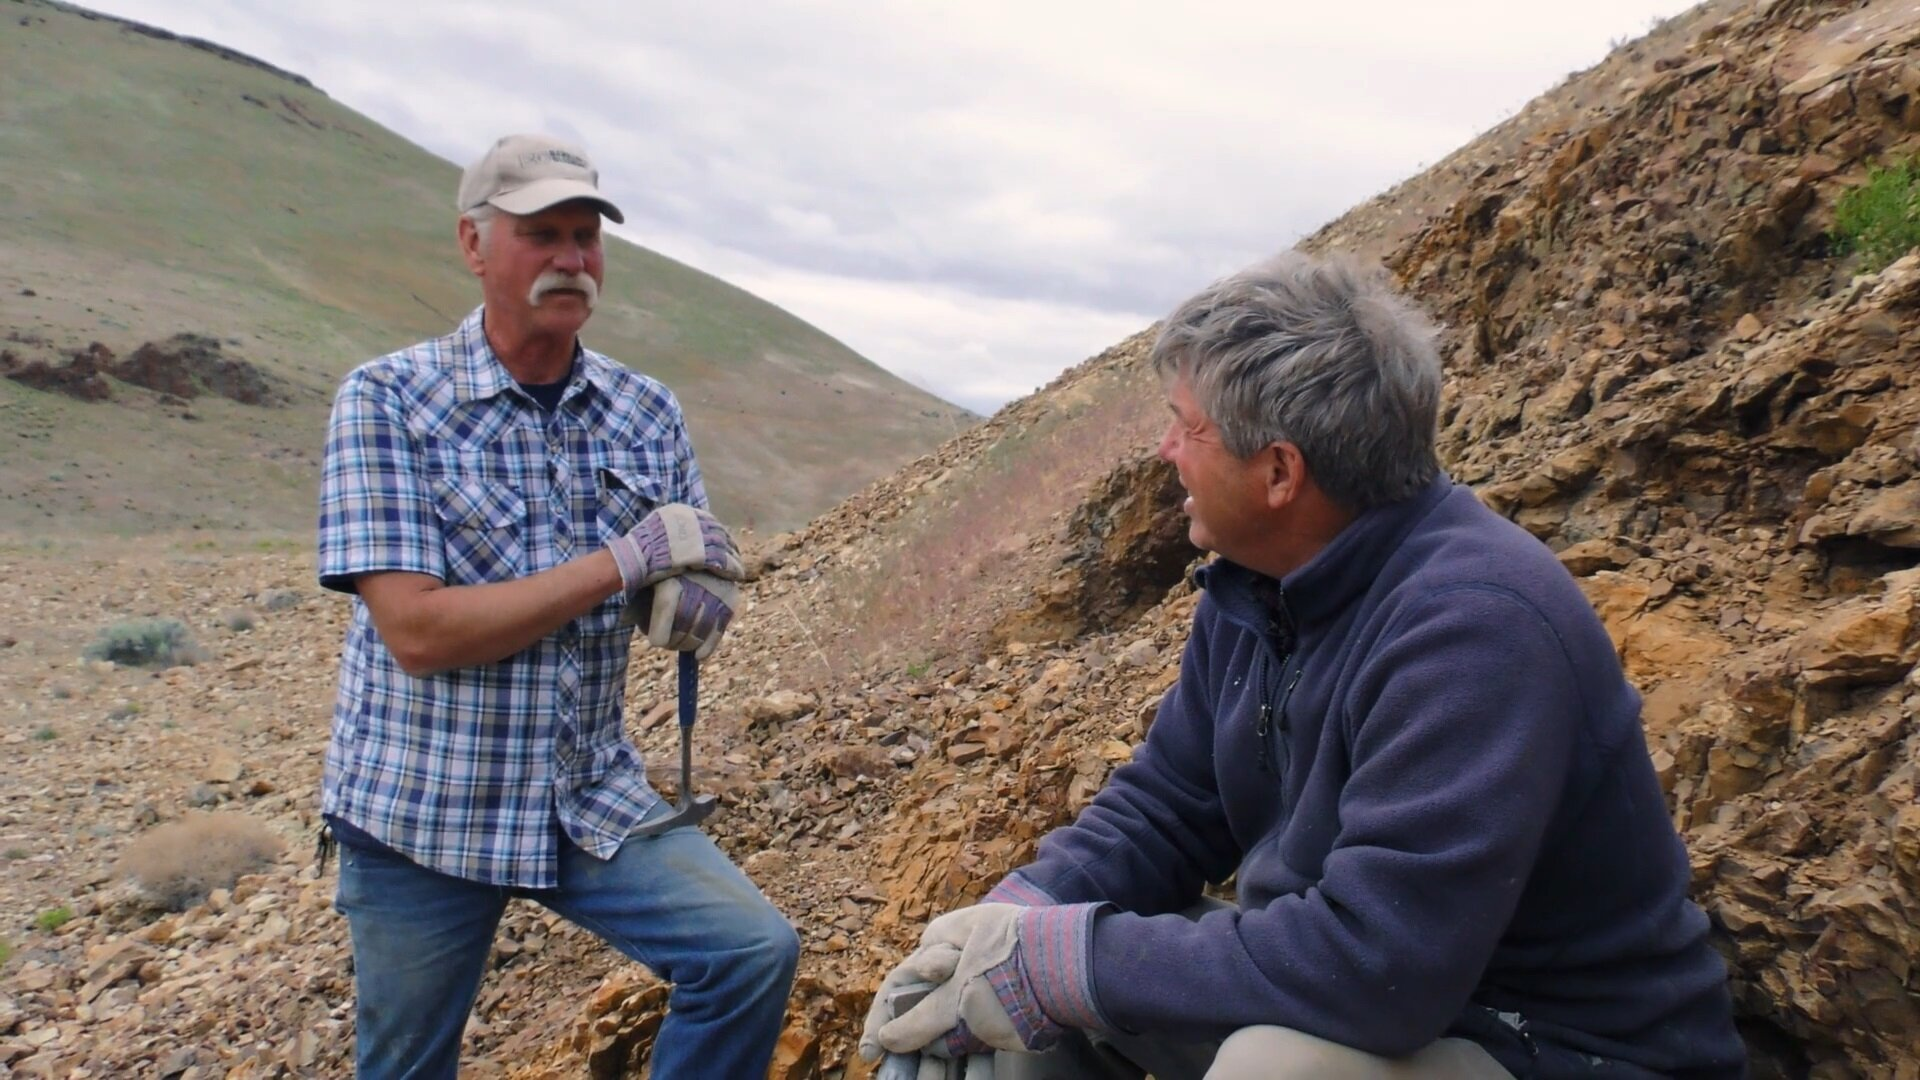 Picture Jasper - Directed by H. Nelson Tracey. 20 mins.On the border between Oregon and Idaho, Steve Schultz, a lifelong man of the American West, mines picture jasper, a rare form of rock that produces spectacular finished jewelry products. Through booms and busts, he works to find these natural treasures.